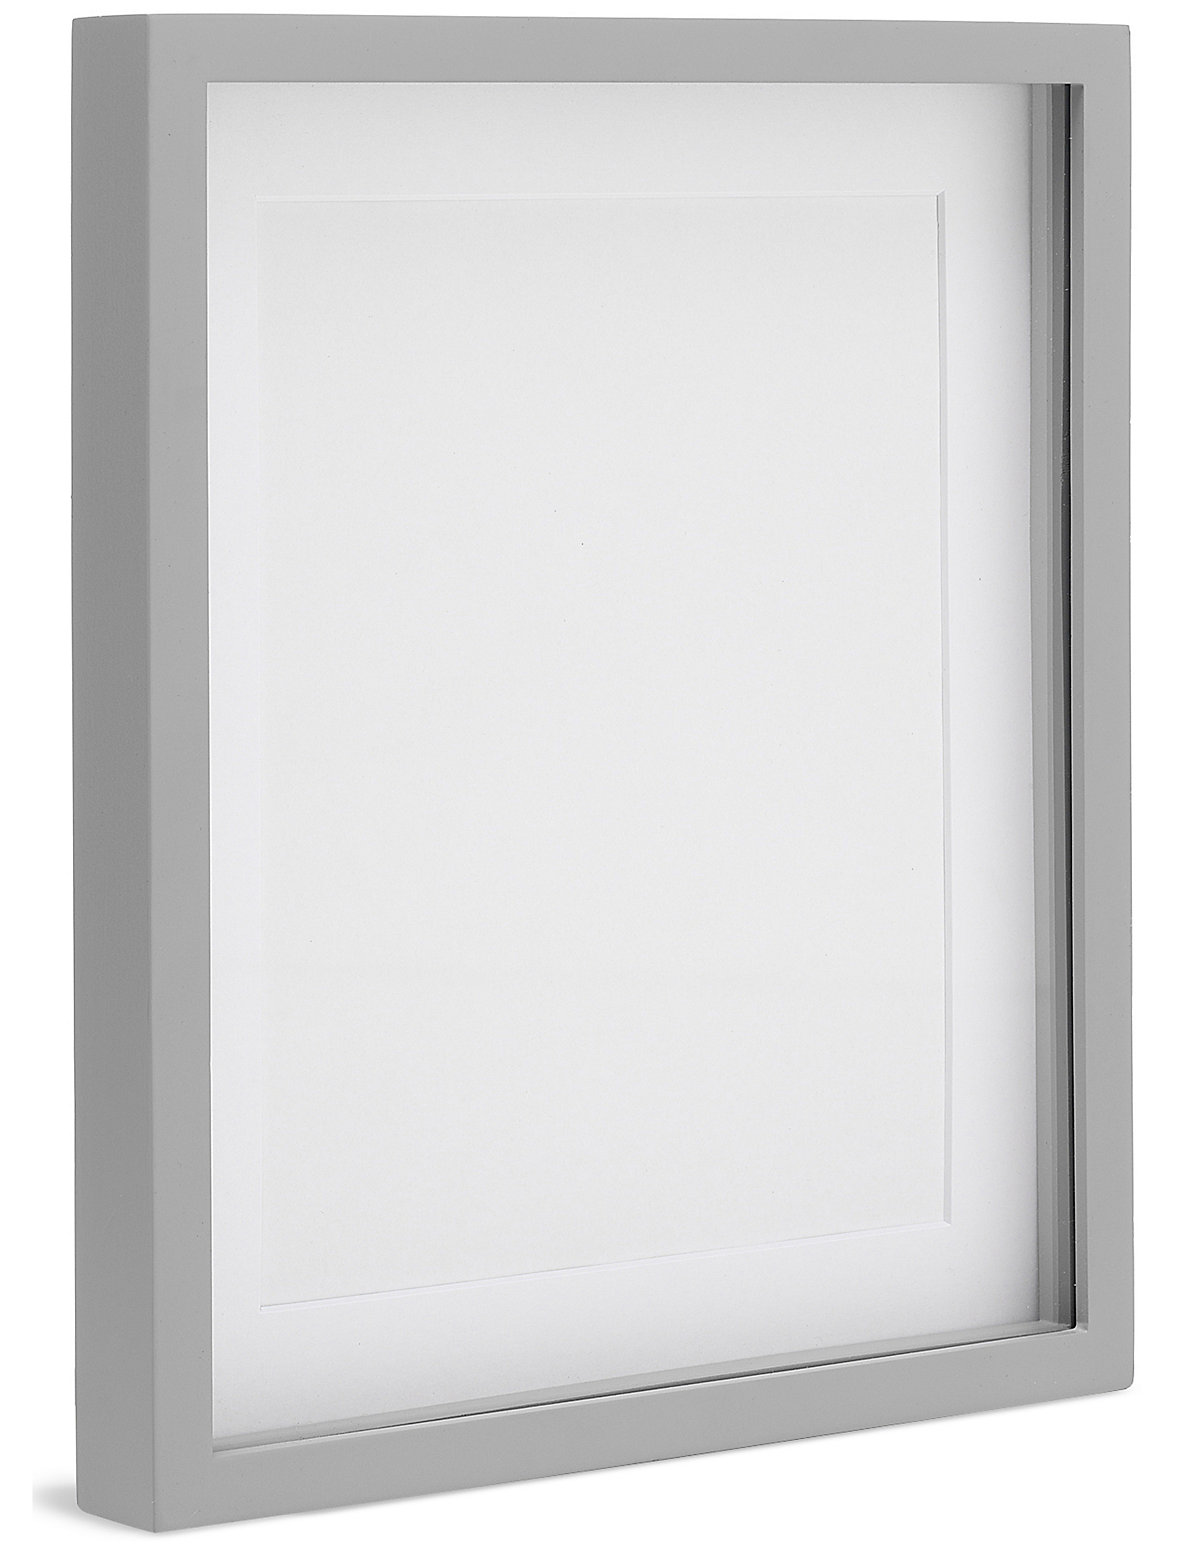 solid wood photo frame 20 x 25cm 8 x 10inch - Mirror Picture Frame